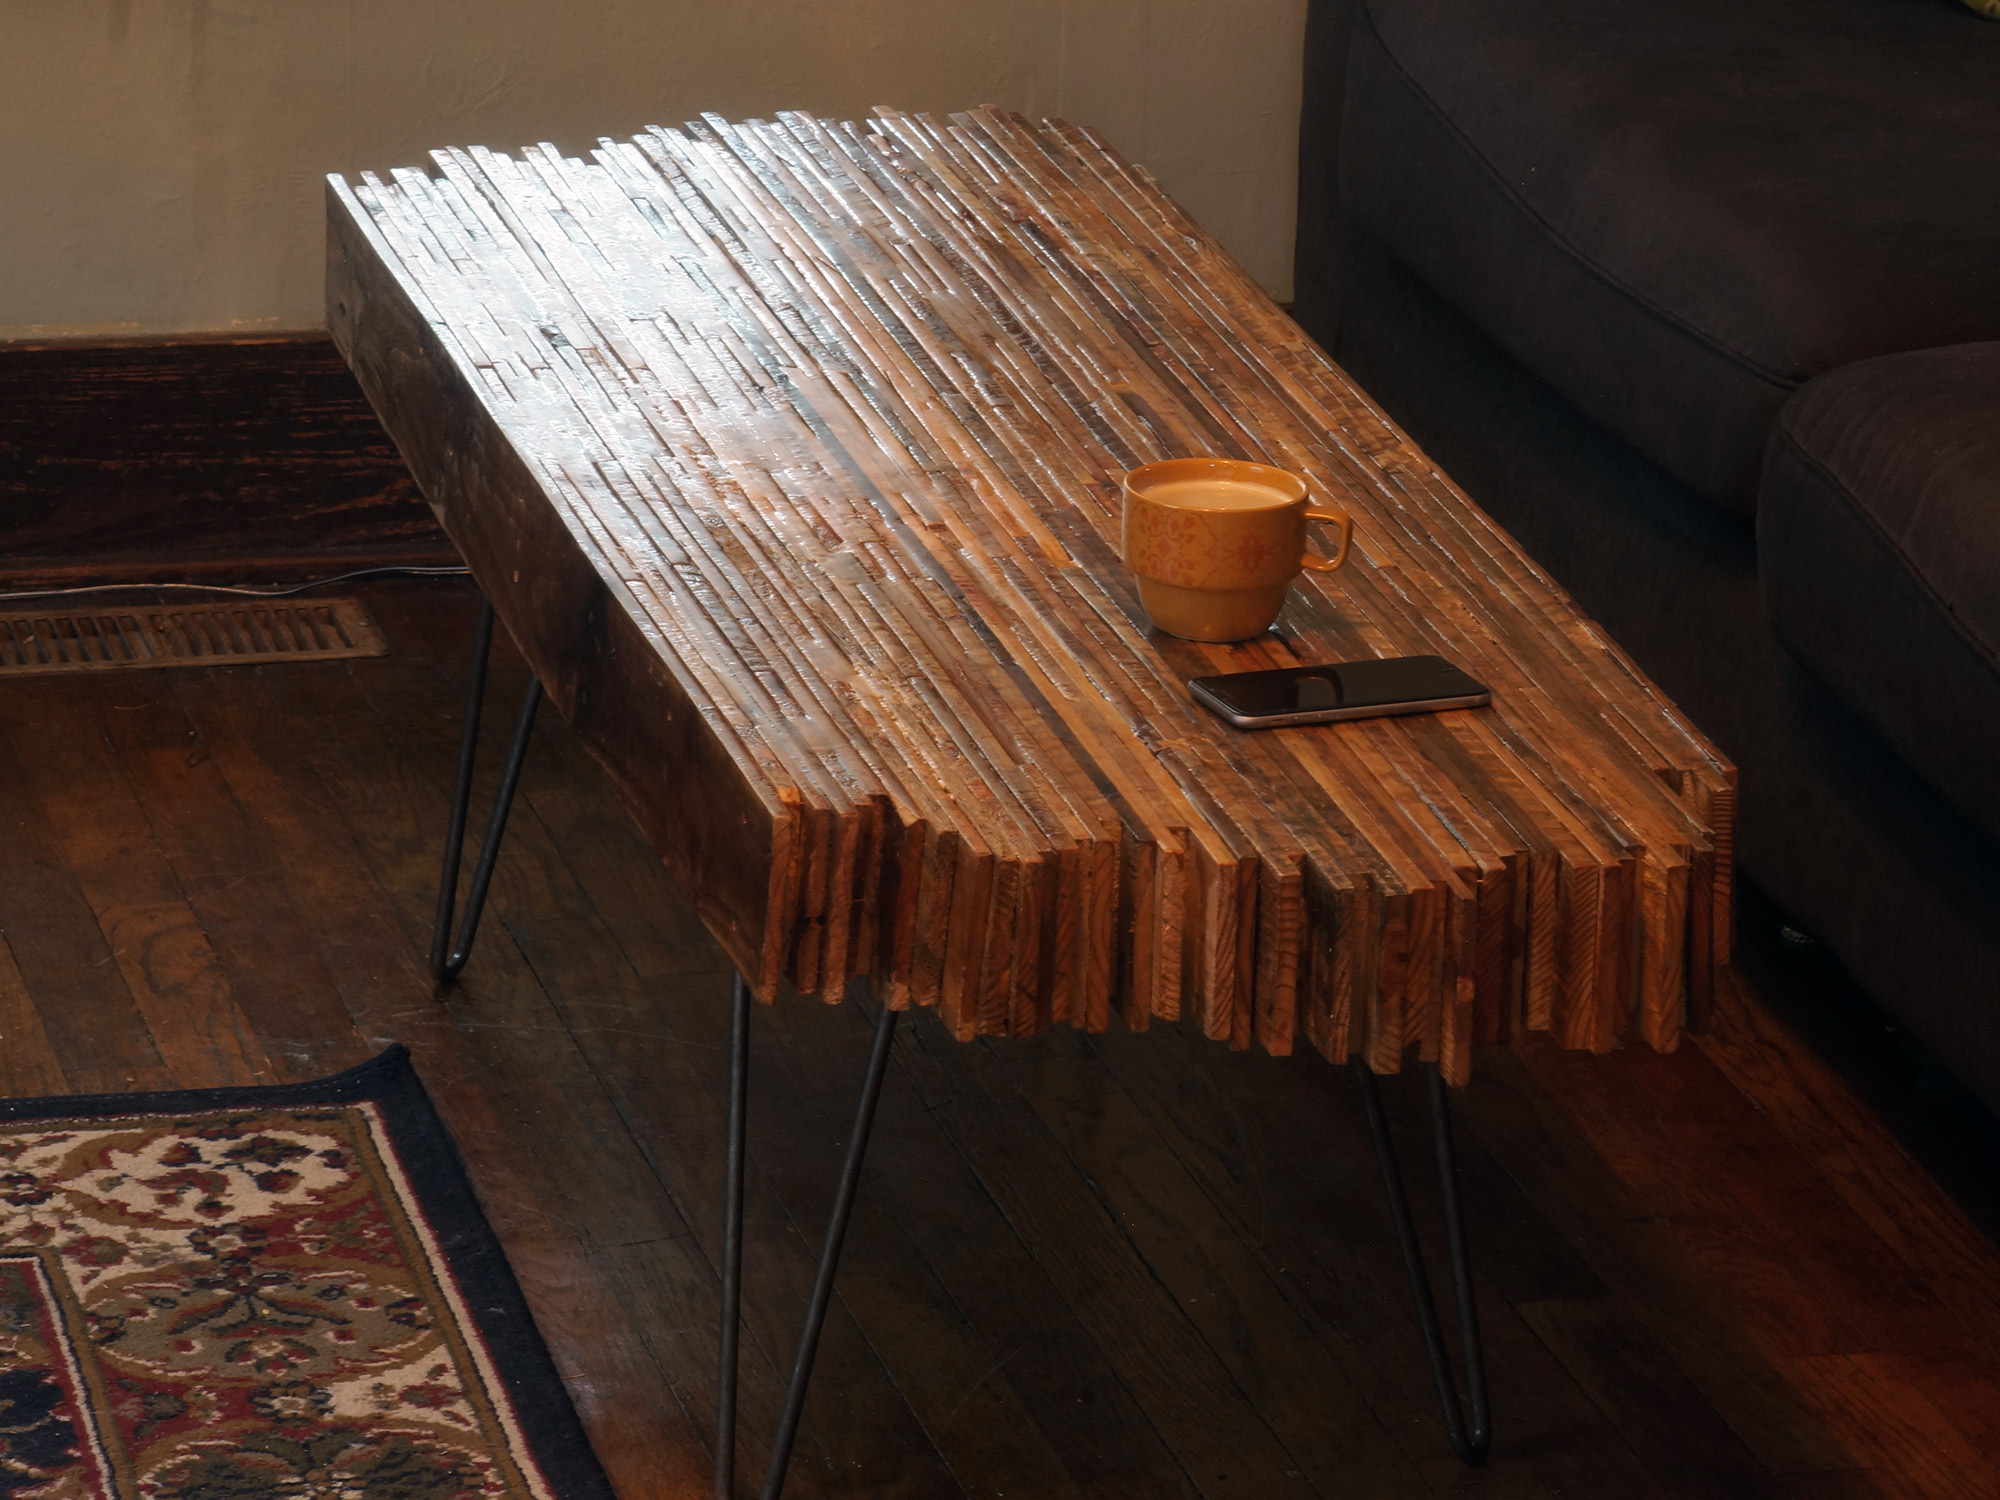 DIY coffee table made out of pallet wood